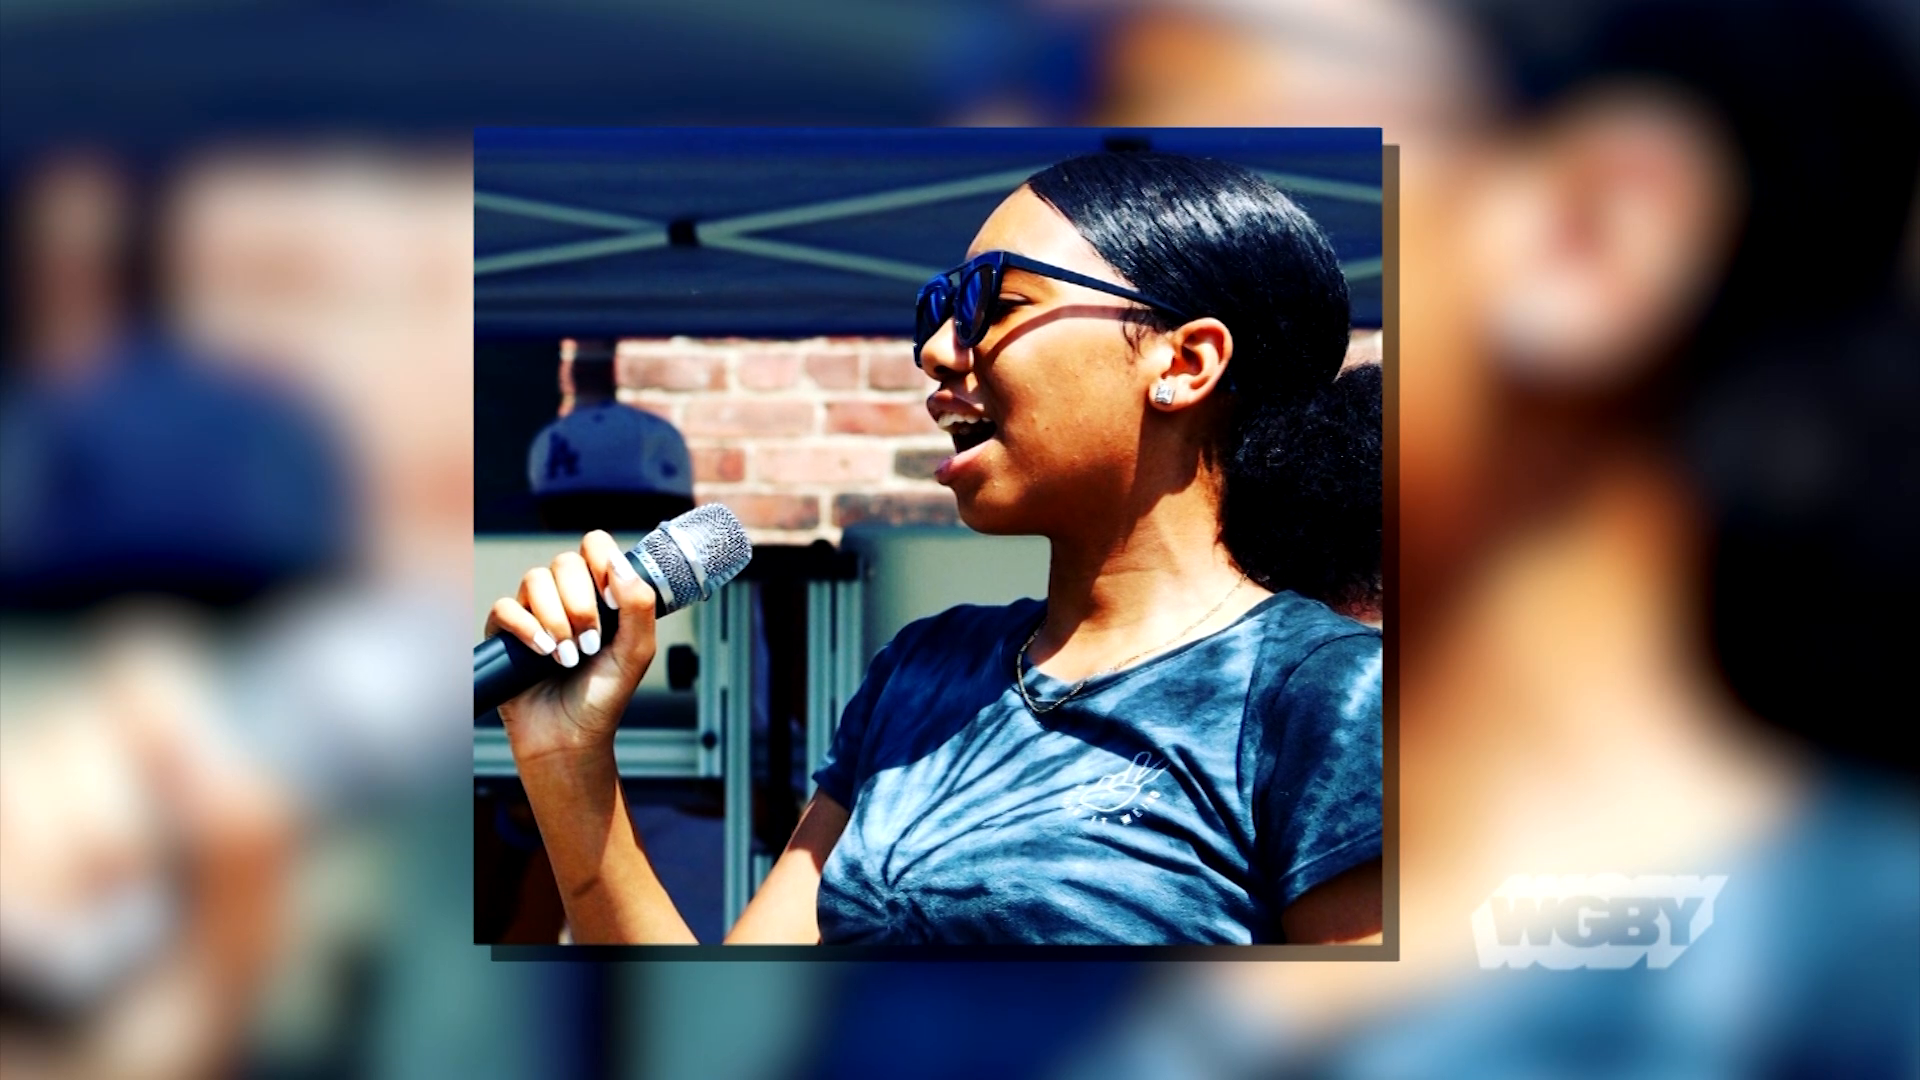 Meet sixteen-year old Kaliyah Gaulin, a western Mass recording artist who has two albums under her belt and dreams of being the next big R & B singer.